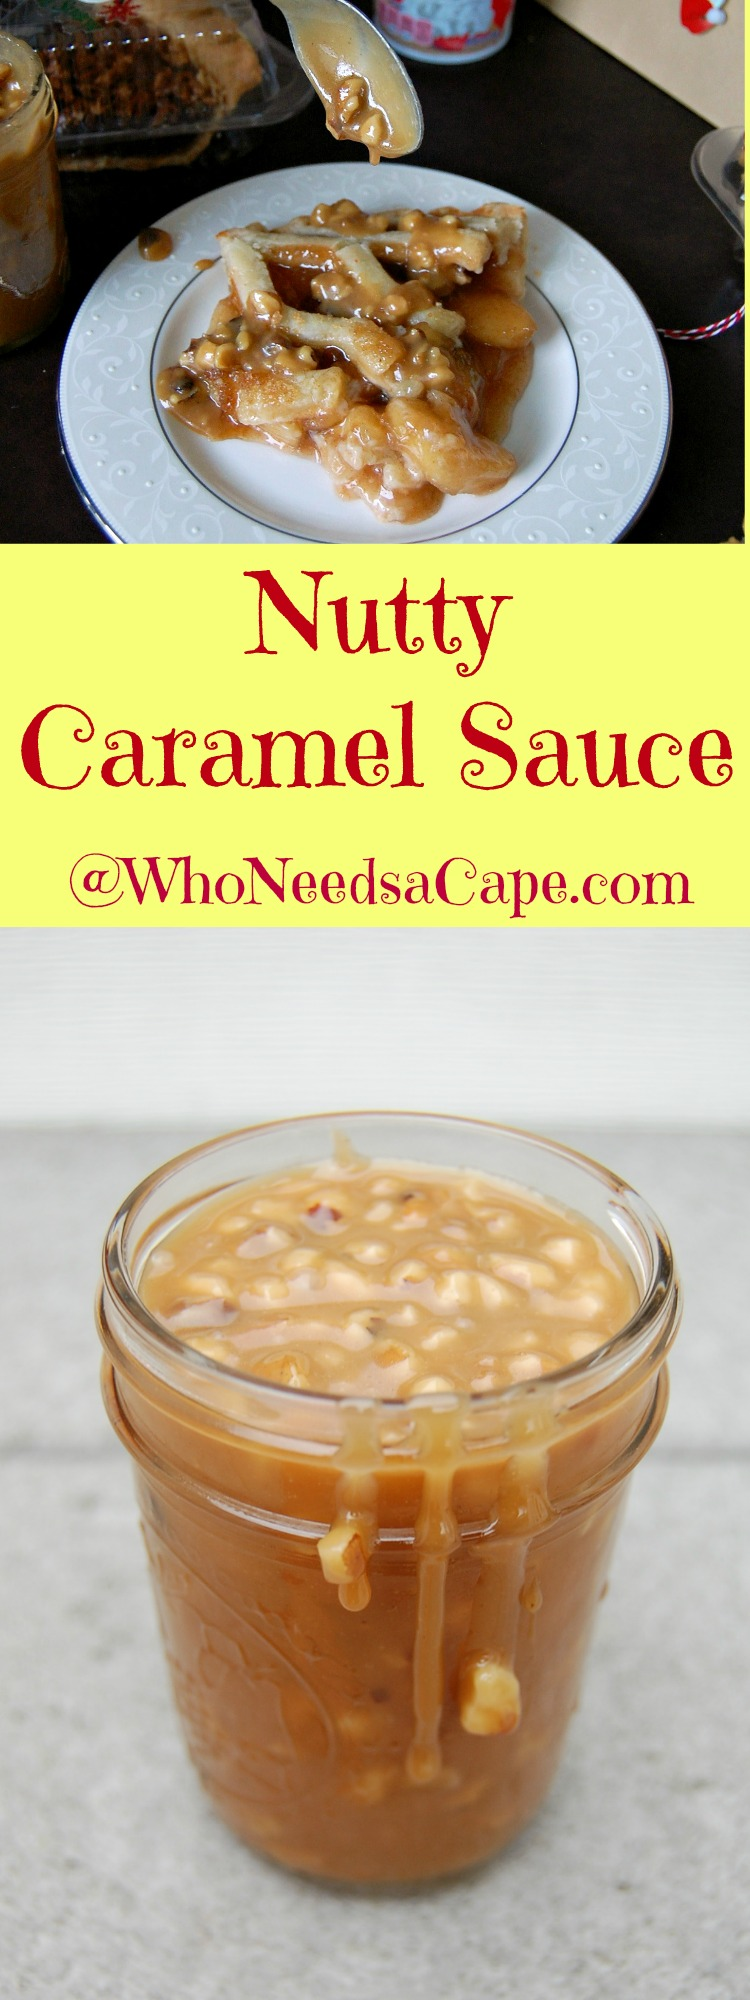 Nutty Caramel Sauce is an easy to make but amazing tasting sauce. A must for any dessert!